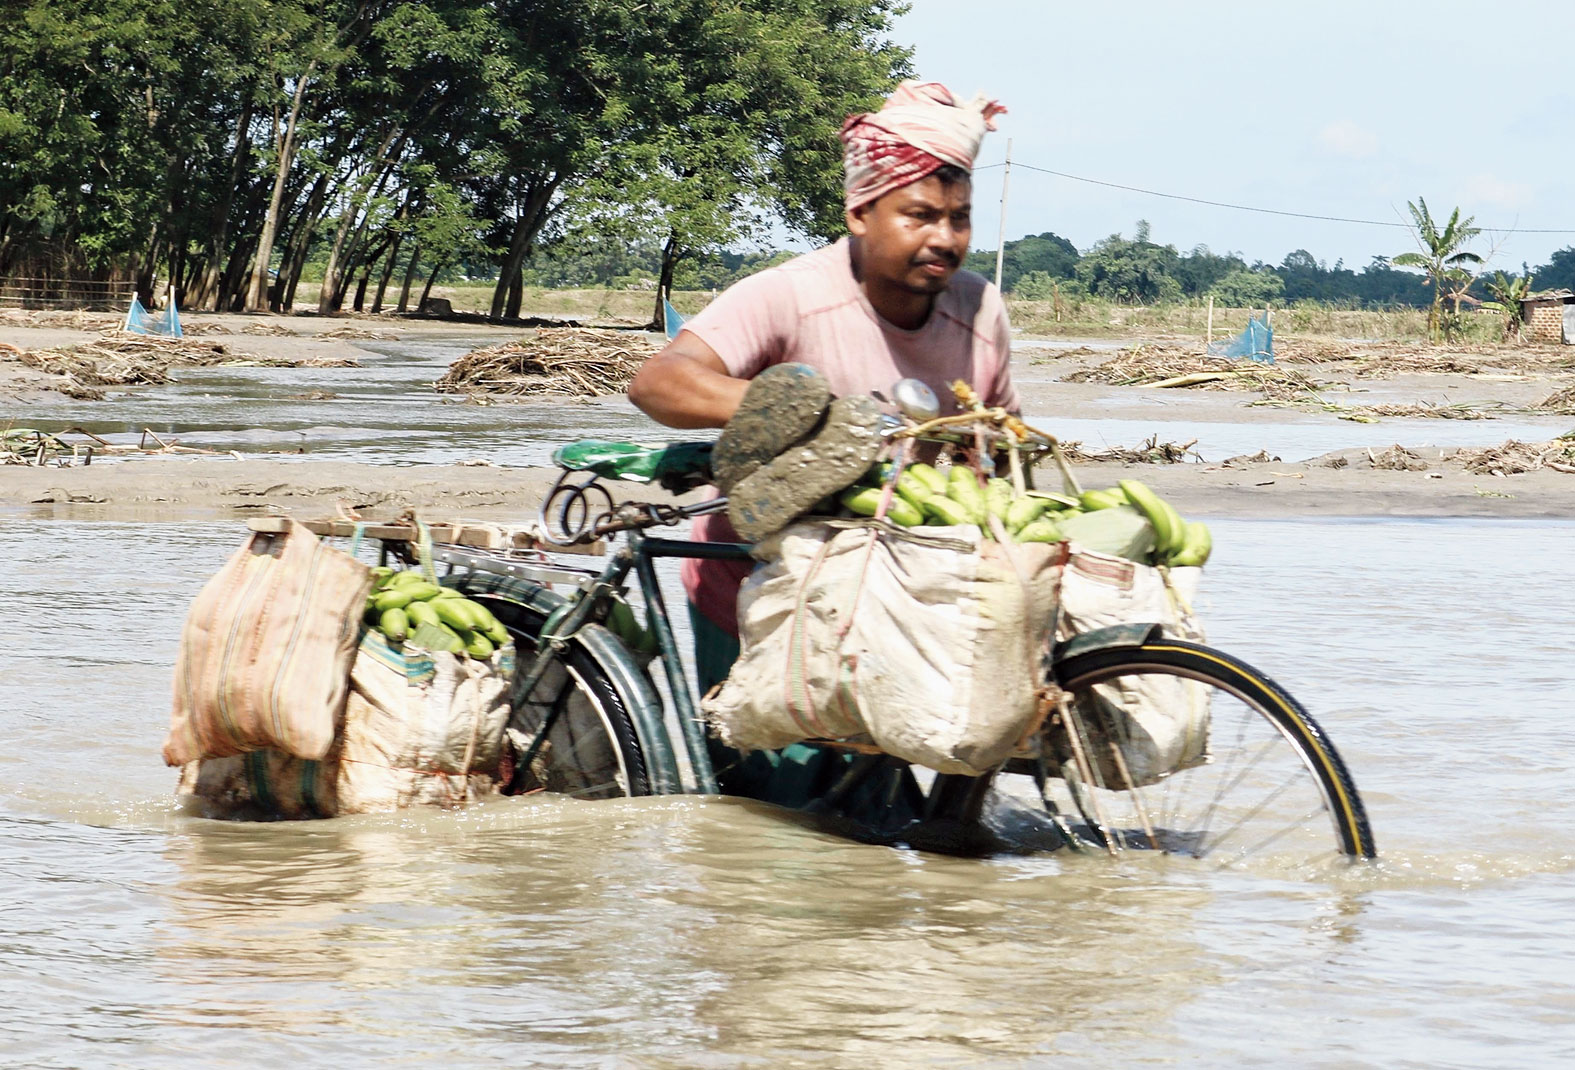 A man manoeuvres his loaded bicycle through a flooded stretch on the Tamulpur to Dhamdhama road near the Pagladiya in Baksa.